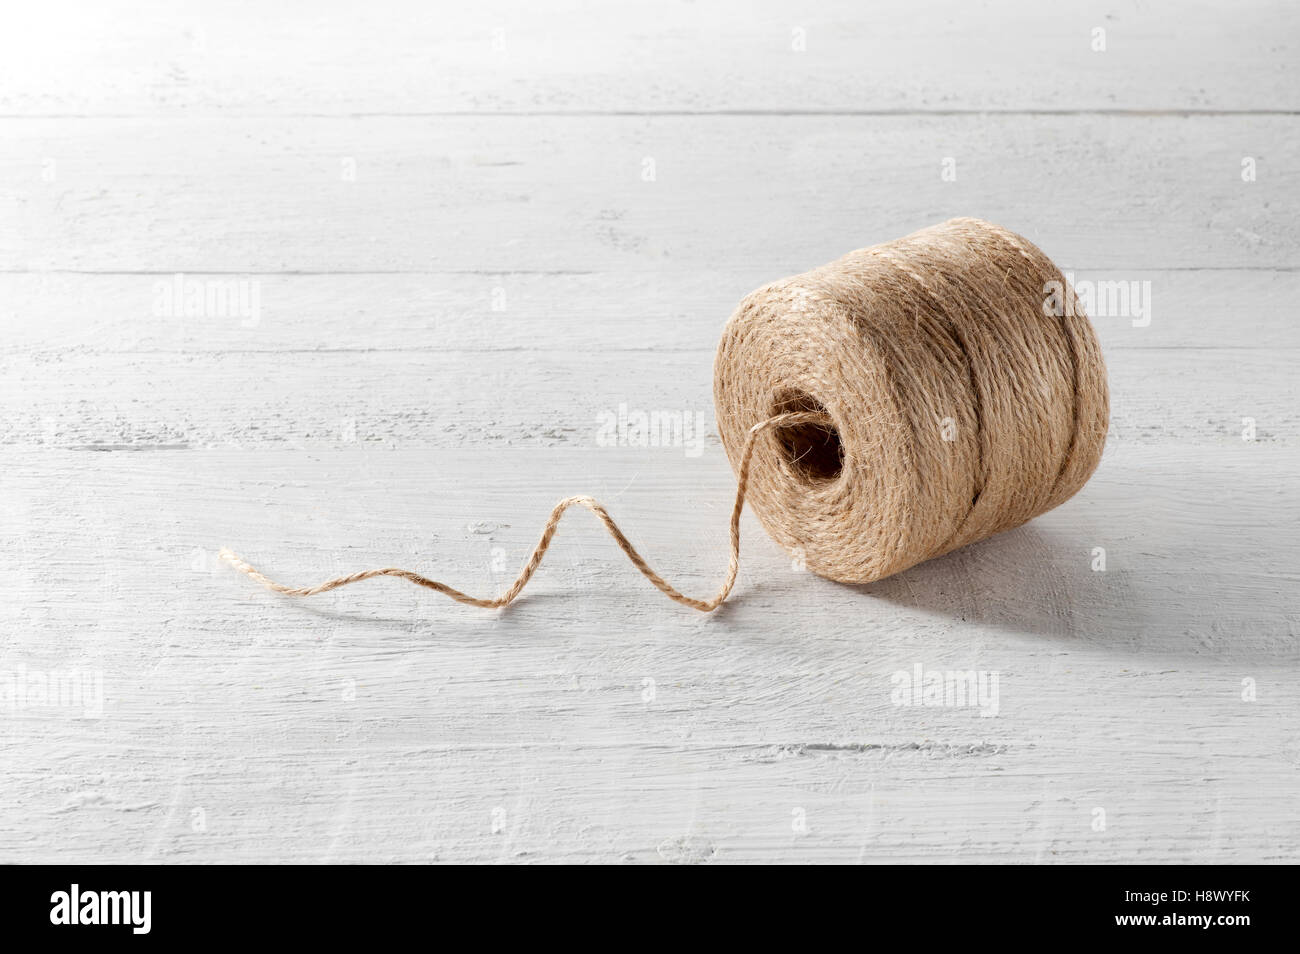 Reel of domestic coarse brown twine made from natural hemp fibers on a white wooden board with a single thread - Stock Image